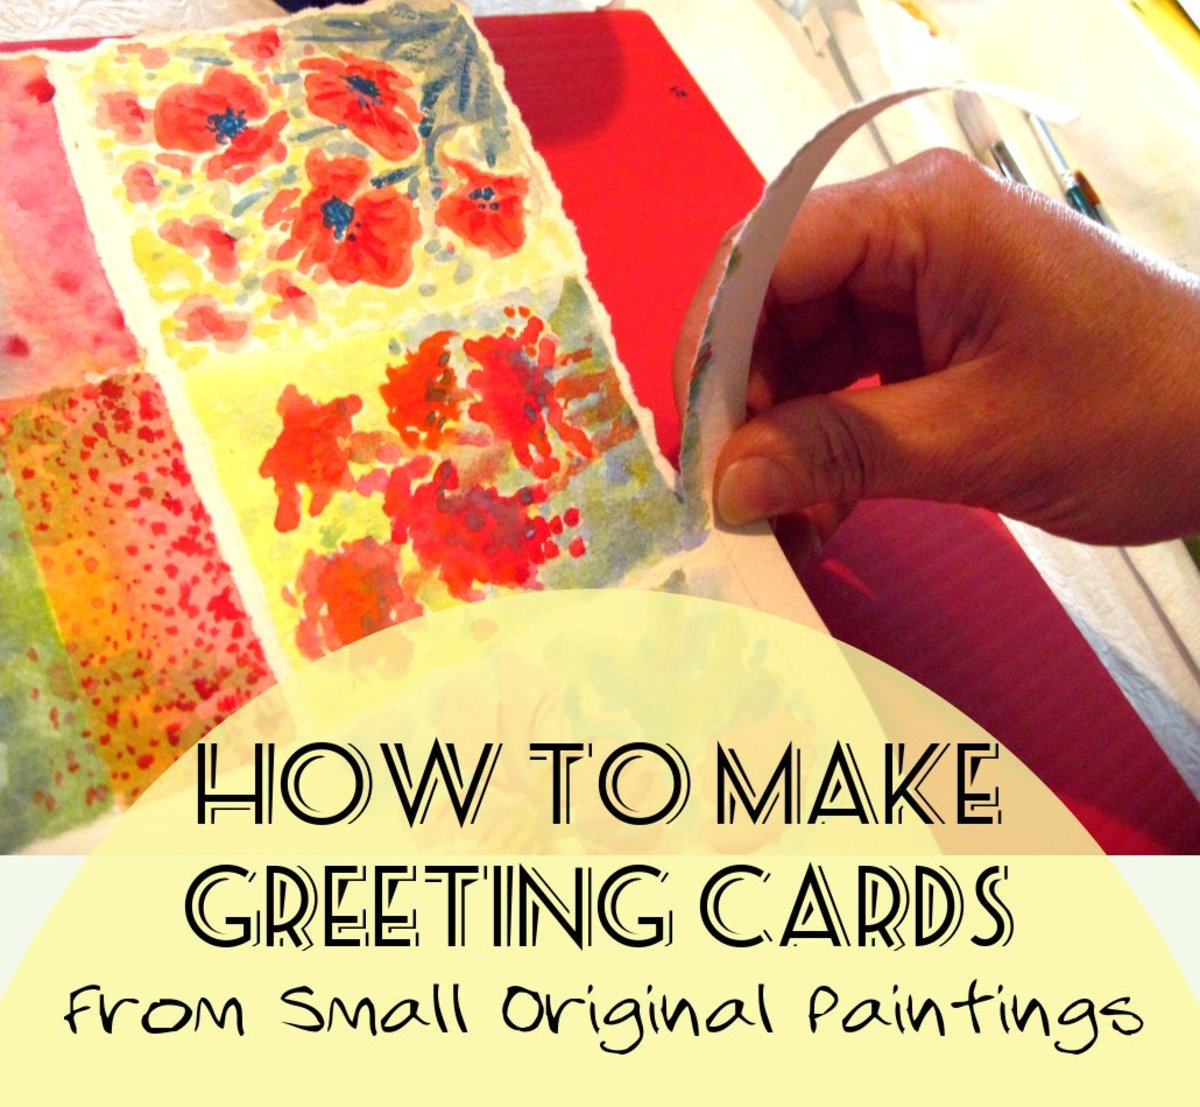 This step-by-step tutorial will show you how to make greeting cards using your own small, original paintings.